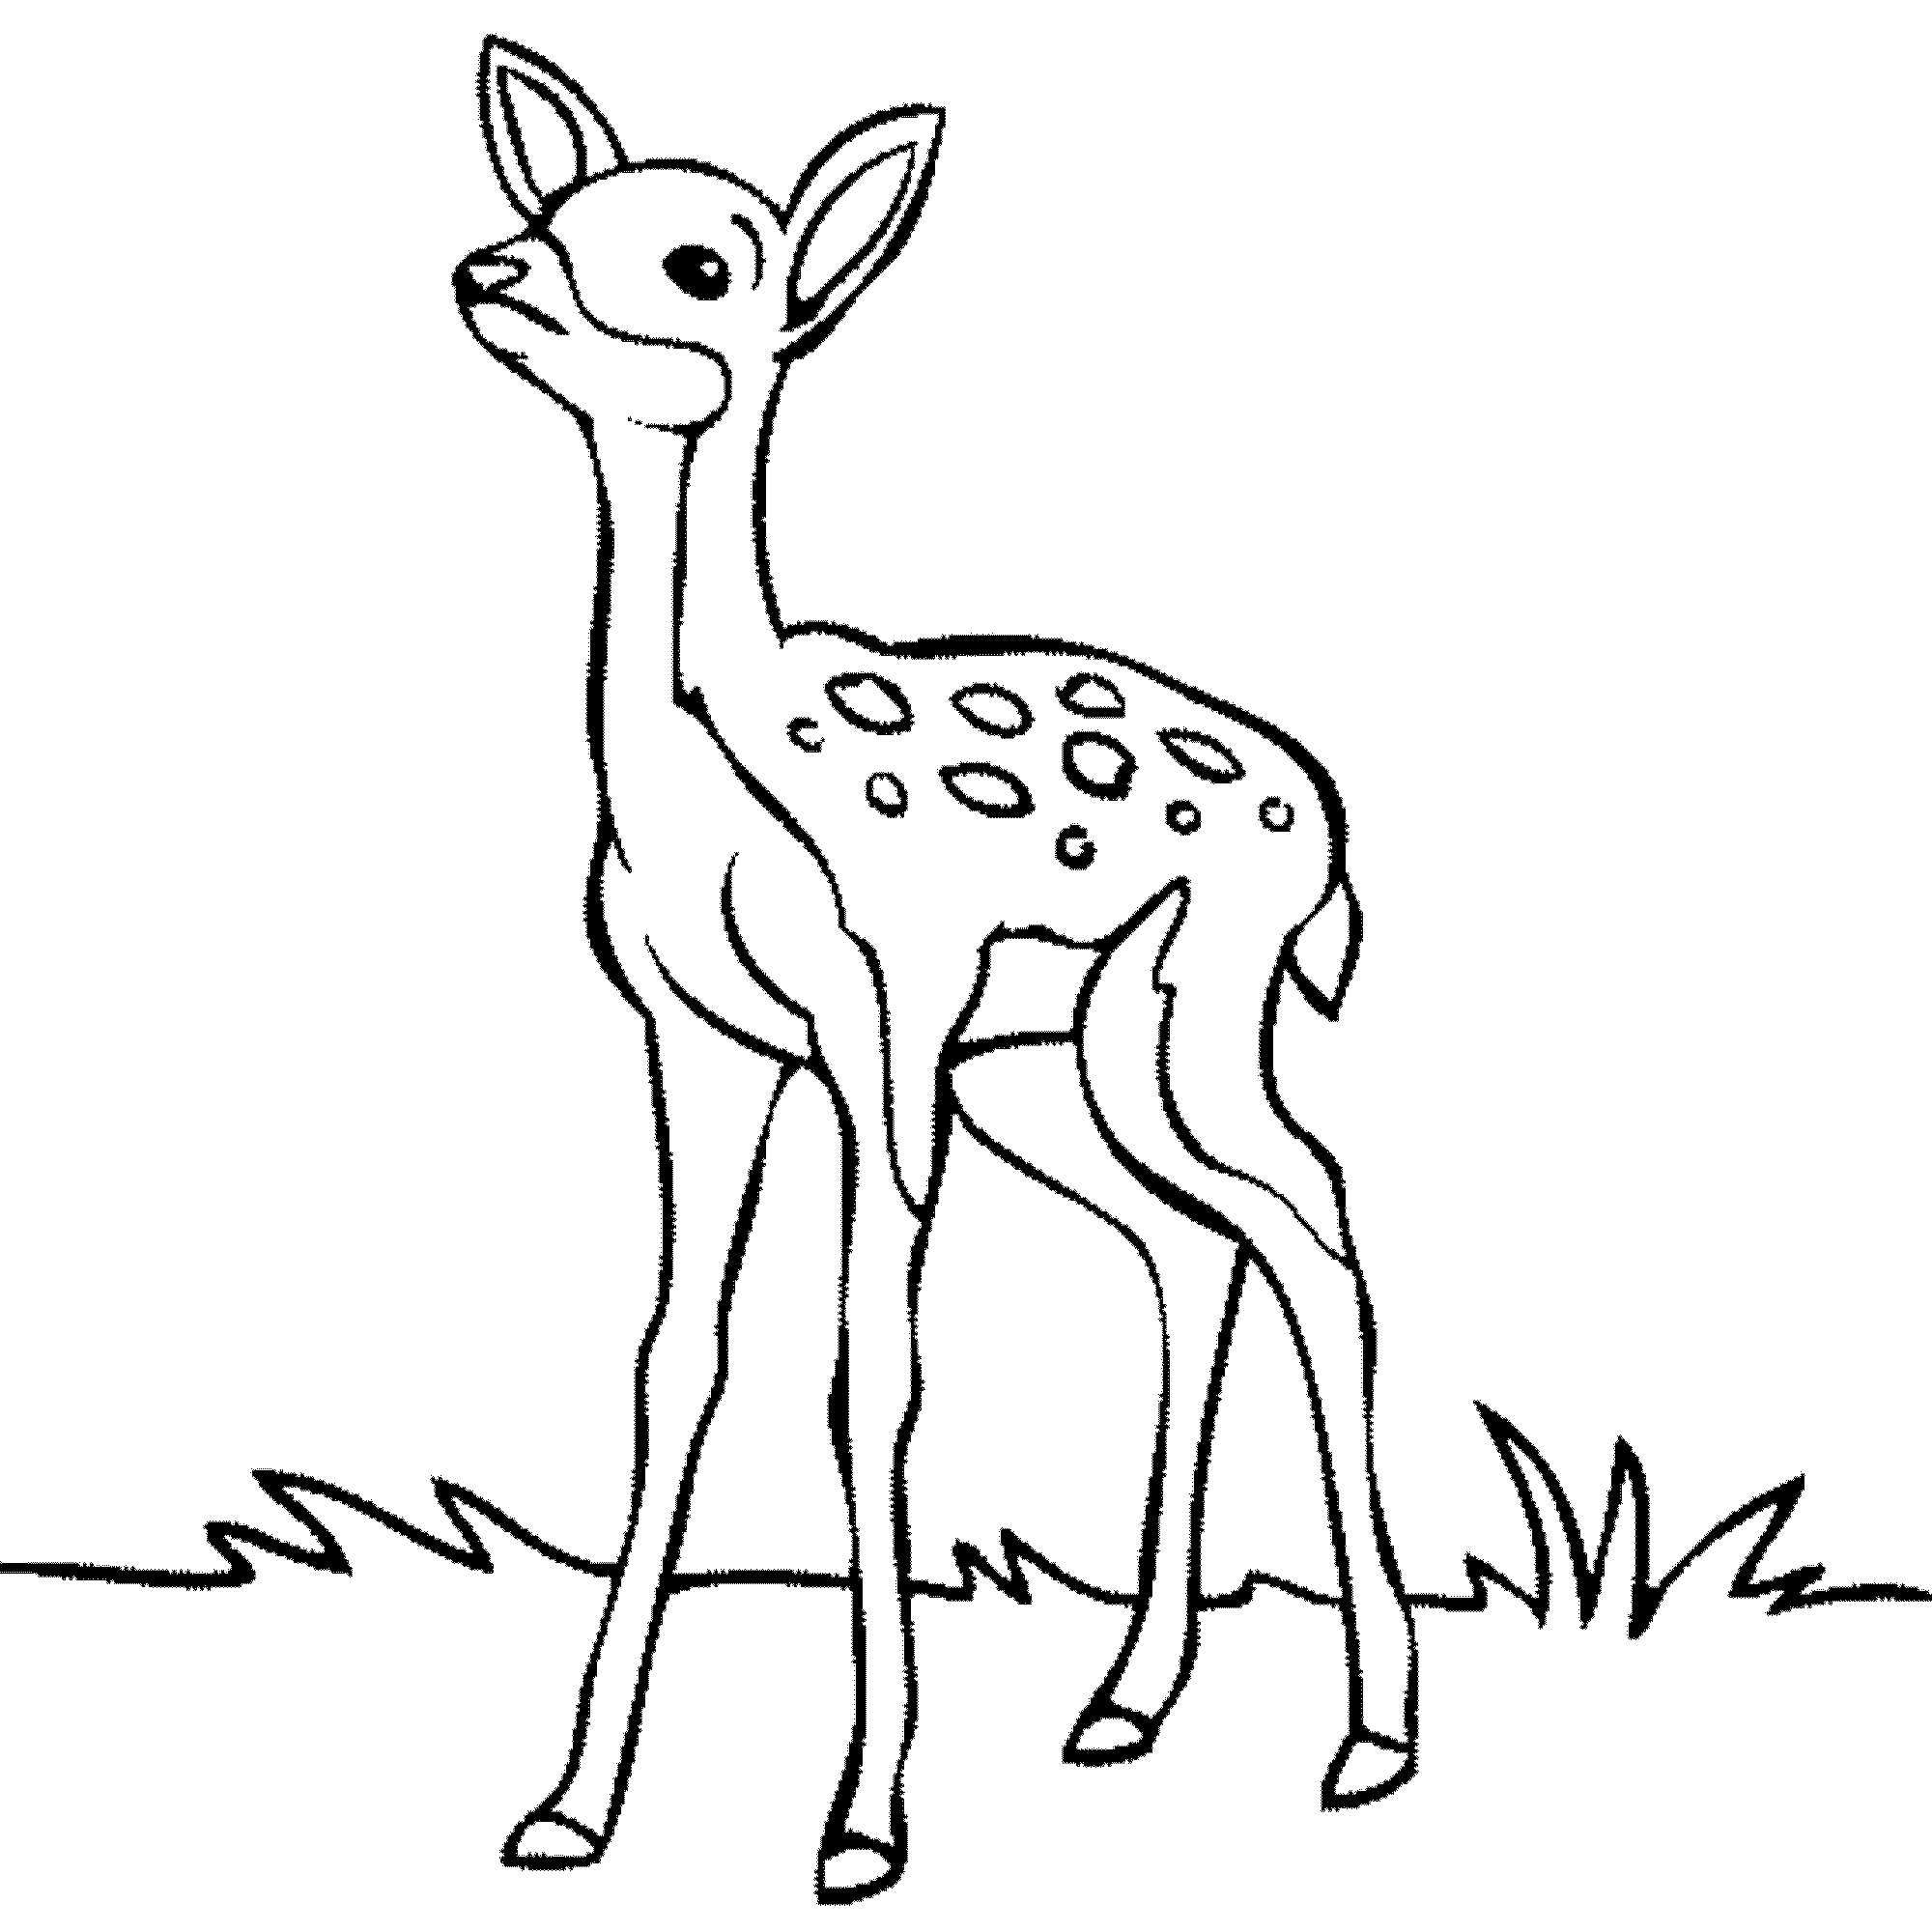 2000x2000 Cute Deer Coloring Pages To Print Coloring For Kids